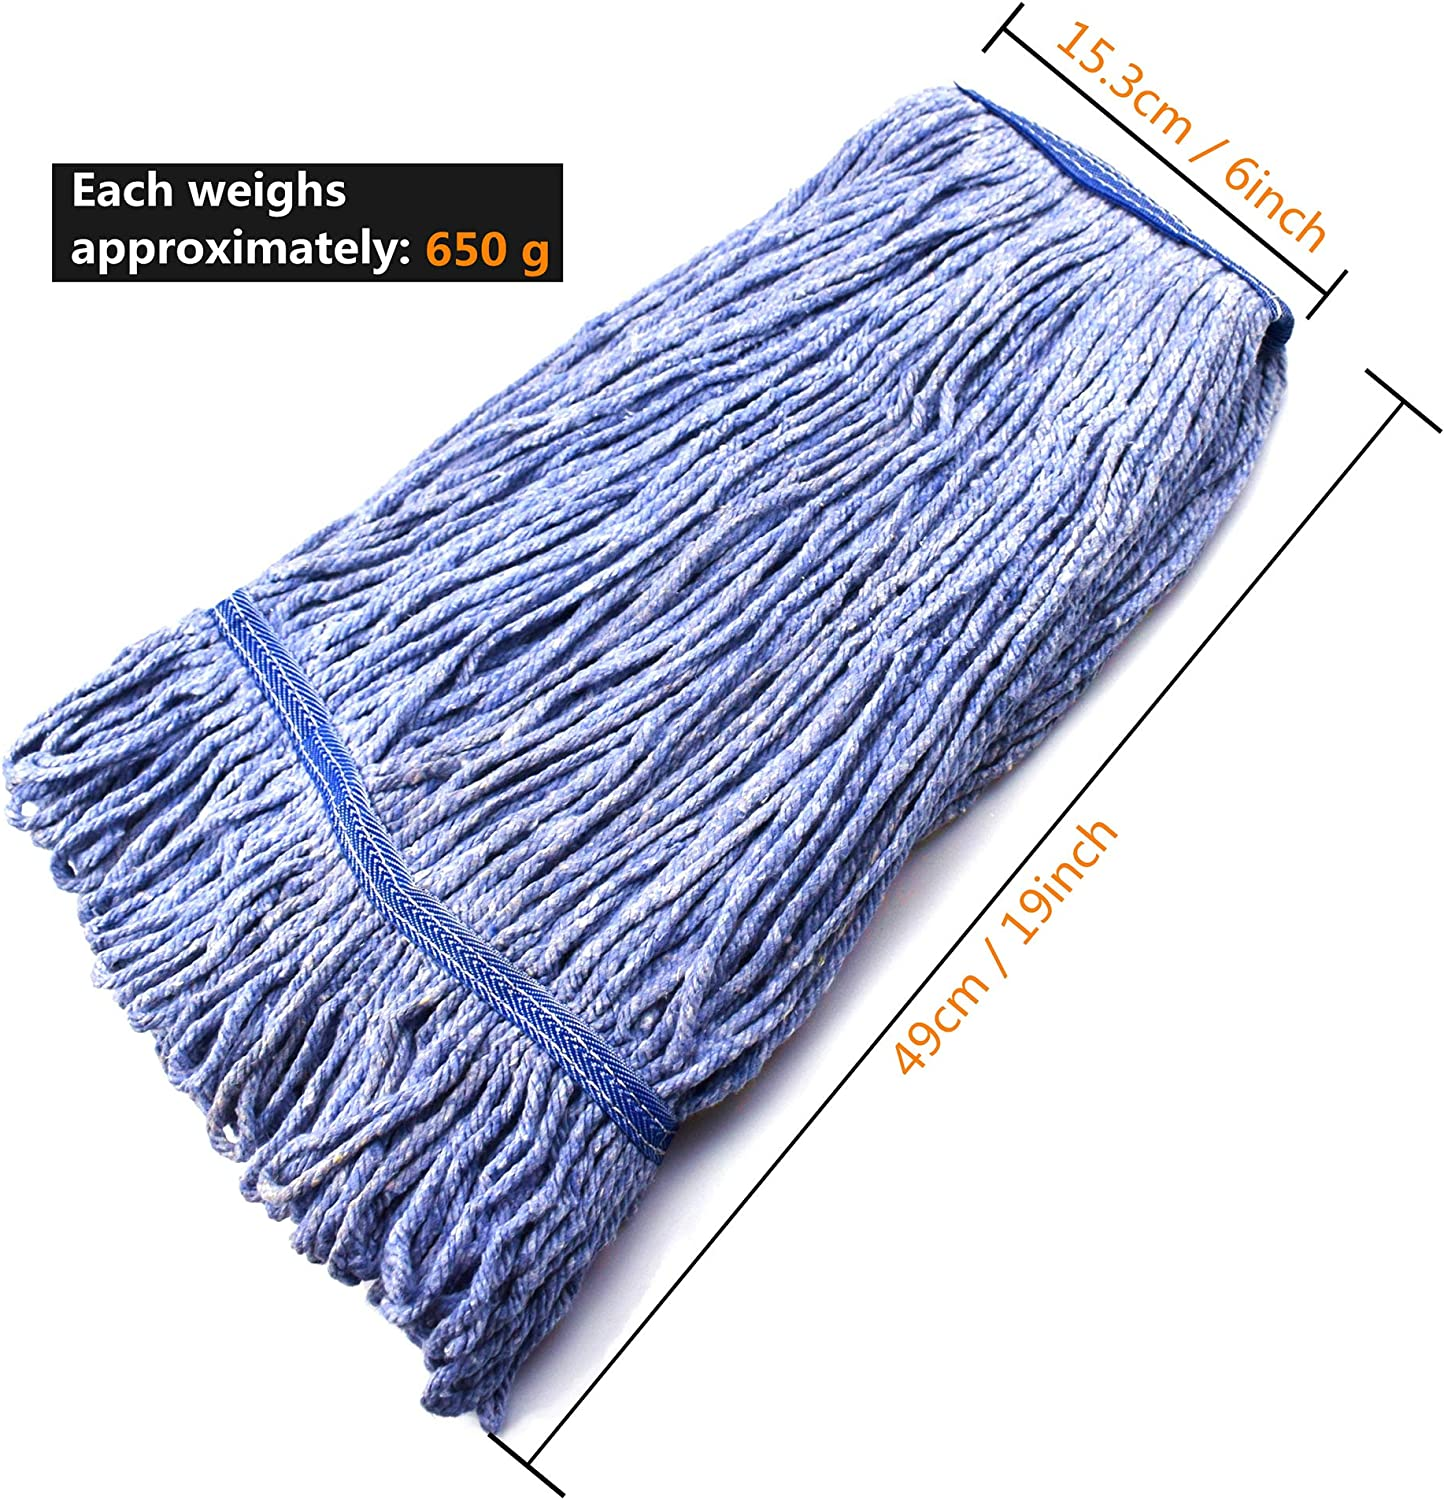 2, Large String Mop Heads Replacement Heavy Duty Commercial Grade Blue Cotton Looped End Wet Industrial Cleaning Mop Head Refills